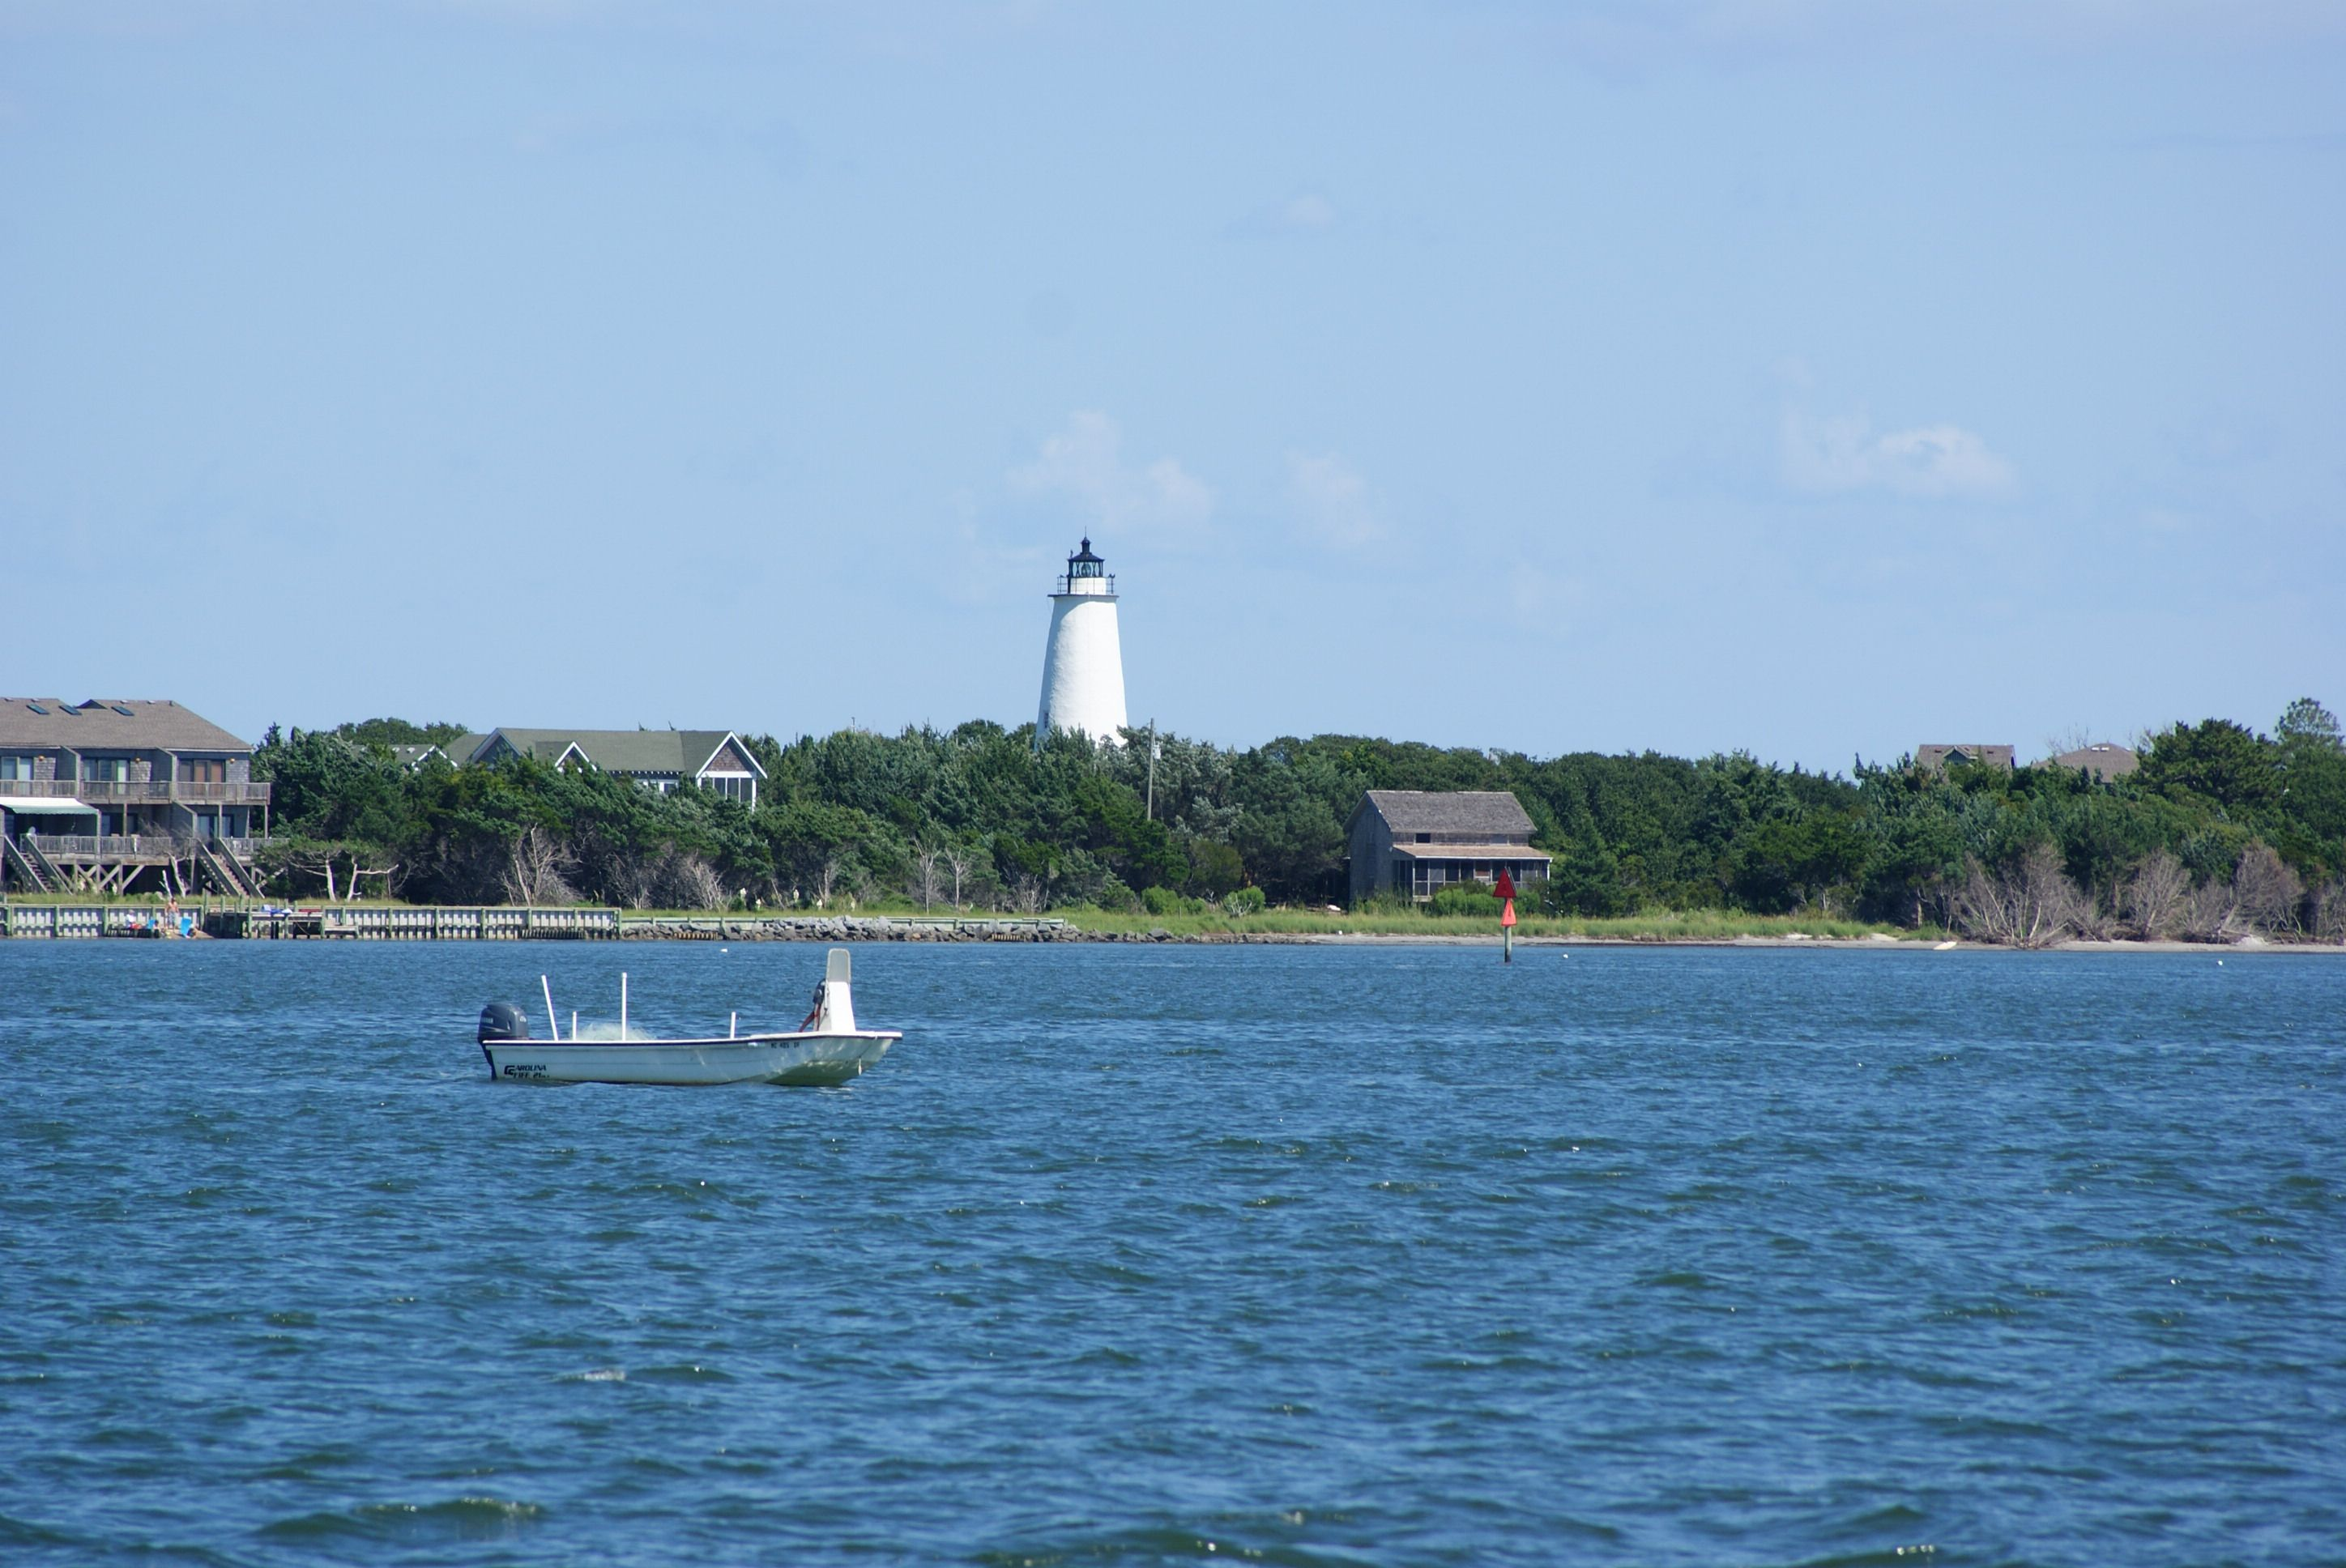 Welcoming you home to Ocracoke from the Cedar Island Ferry, the Ocracoke Lighthouse.